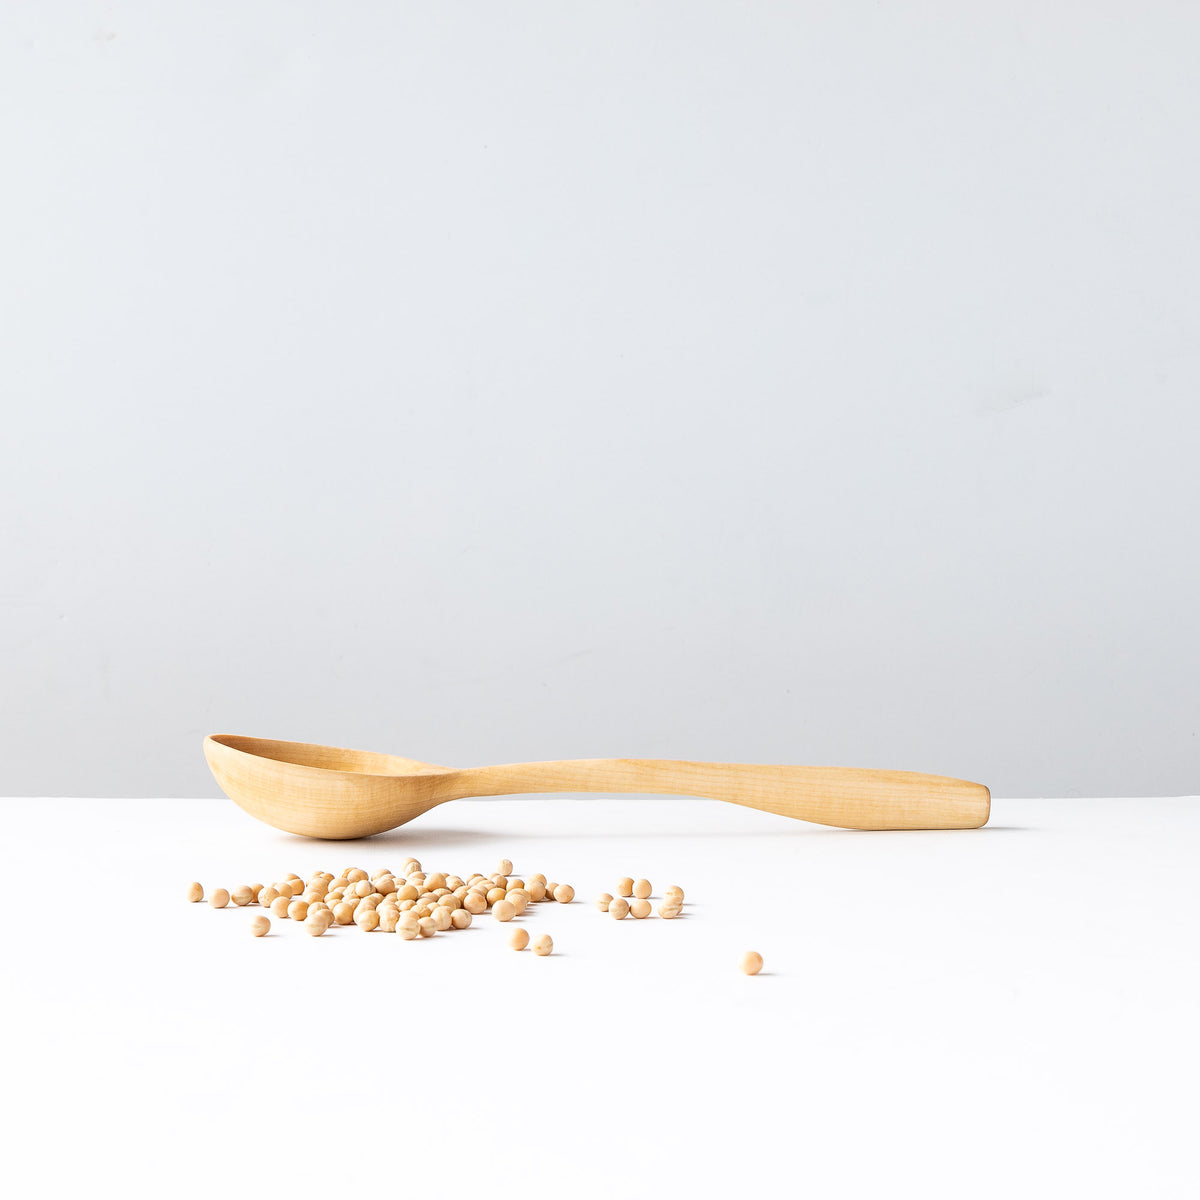 Hand-carved Basswood Ladle - Sold by Chic & Basta